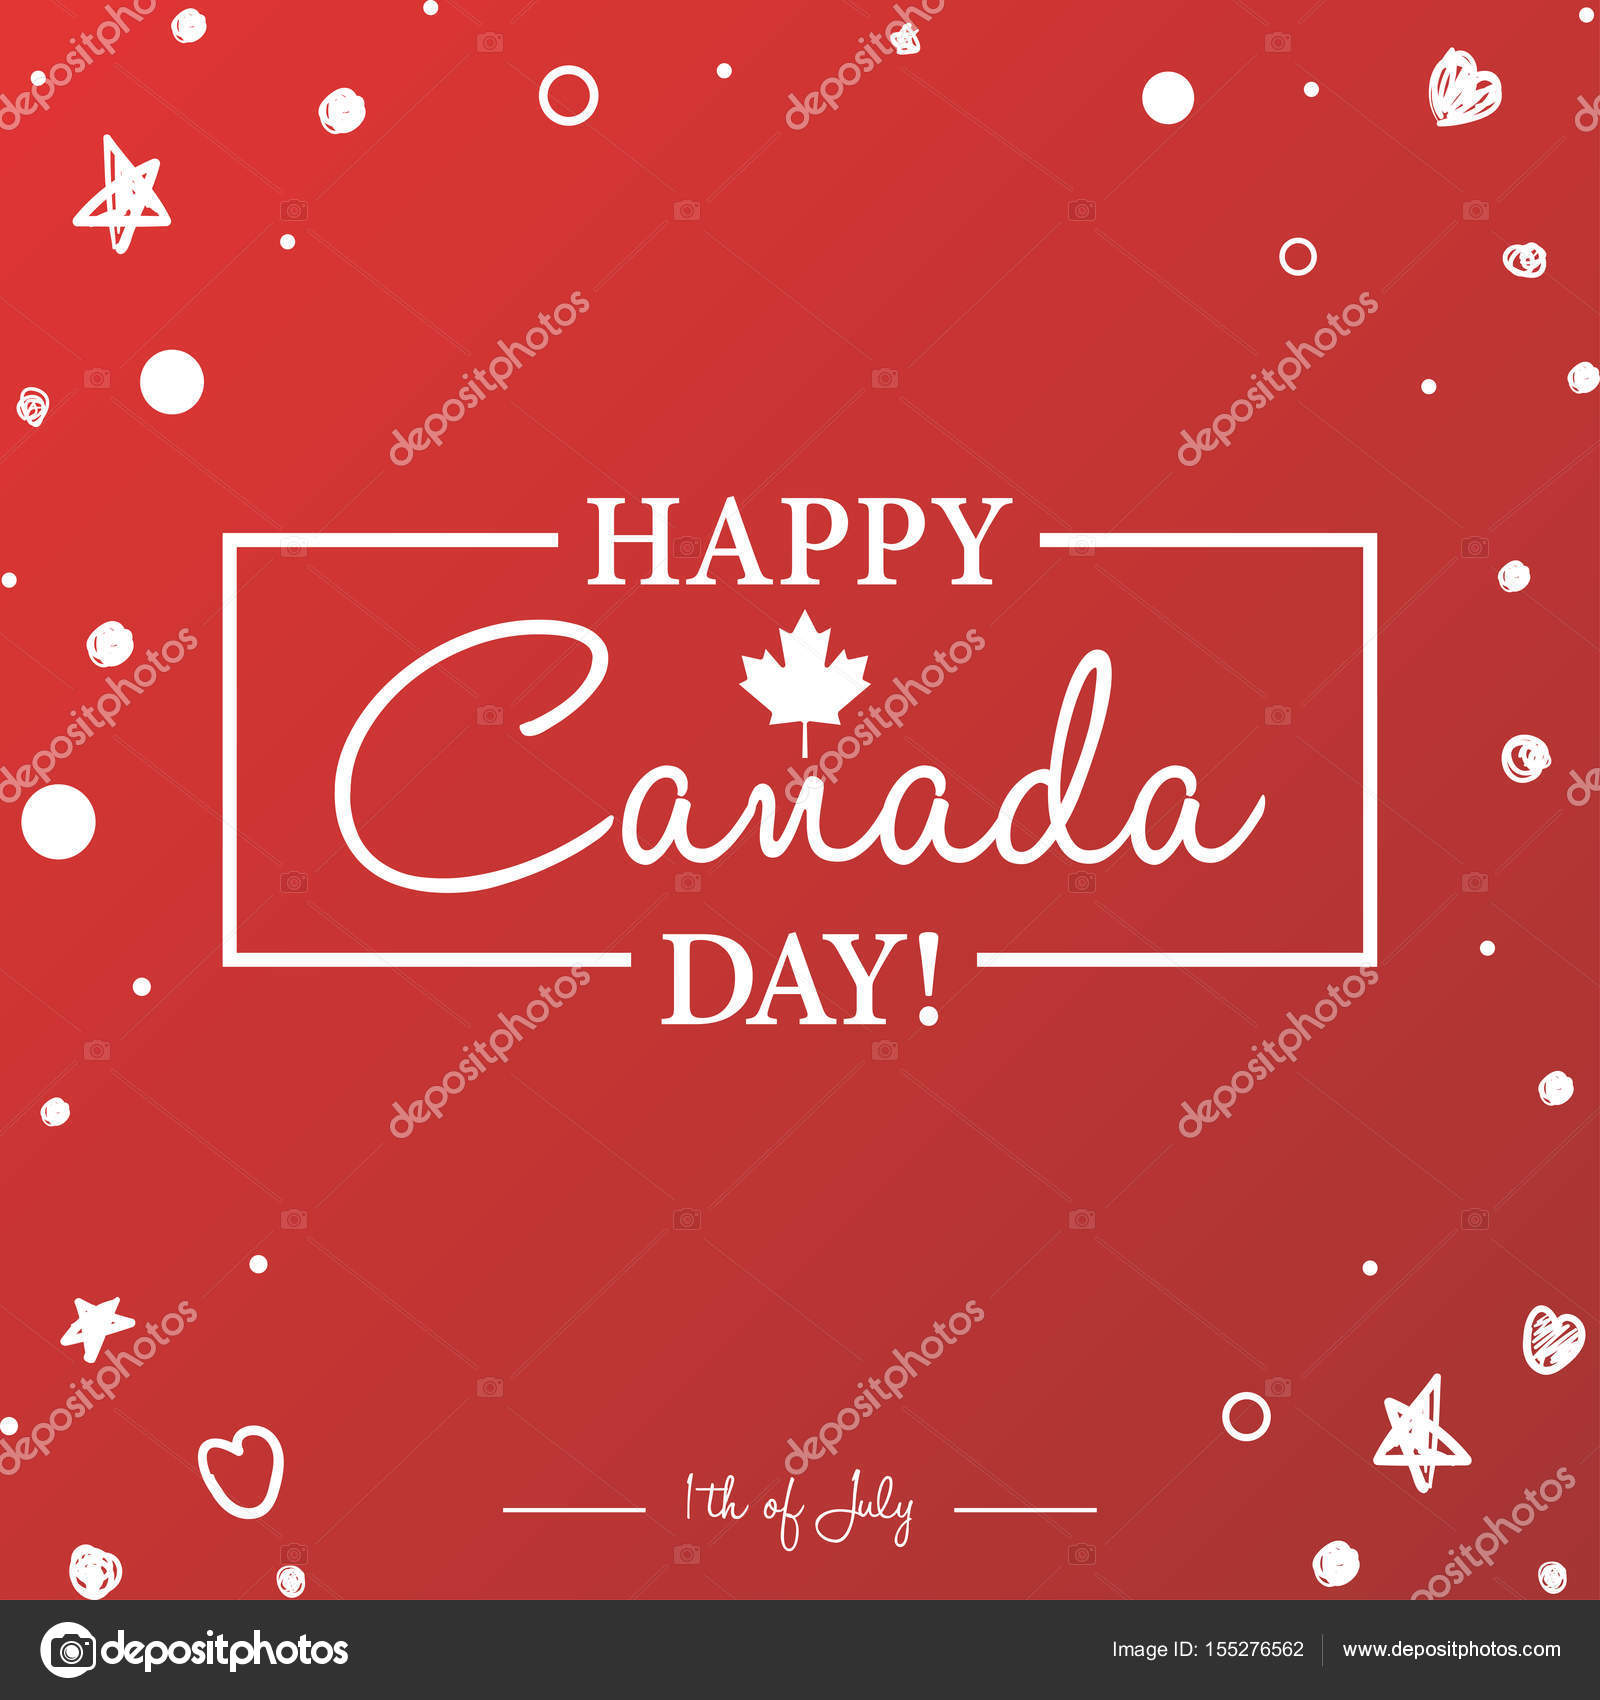 Happy canada day greeting card stock vector galastudio 155276562 happy canada day greeting card stock vector m4hsunfo